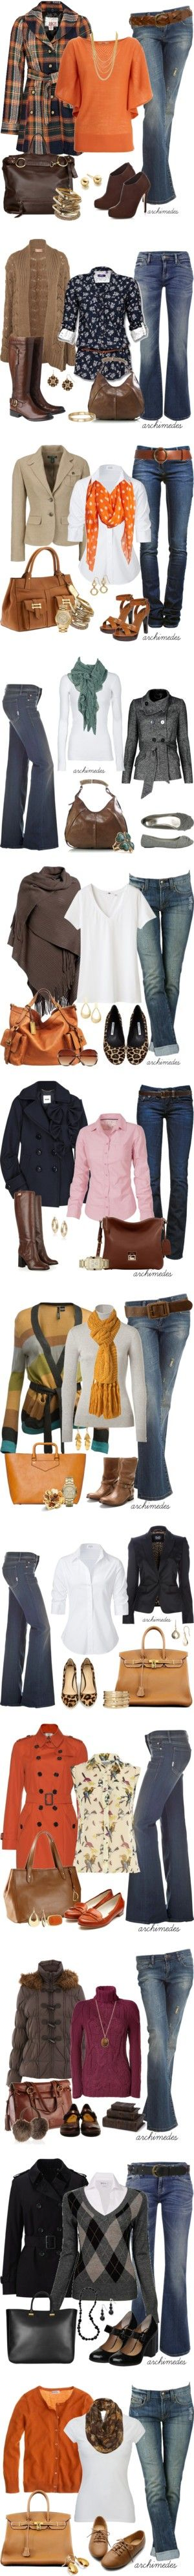 Love all theses fall outfits